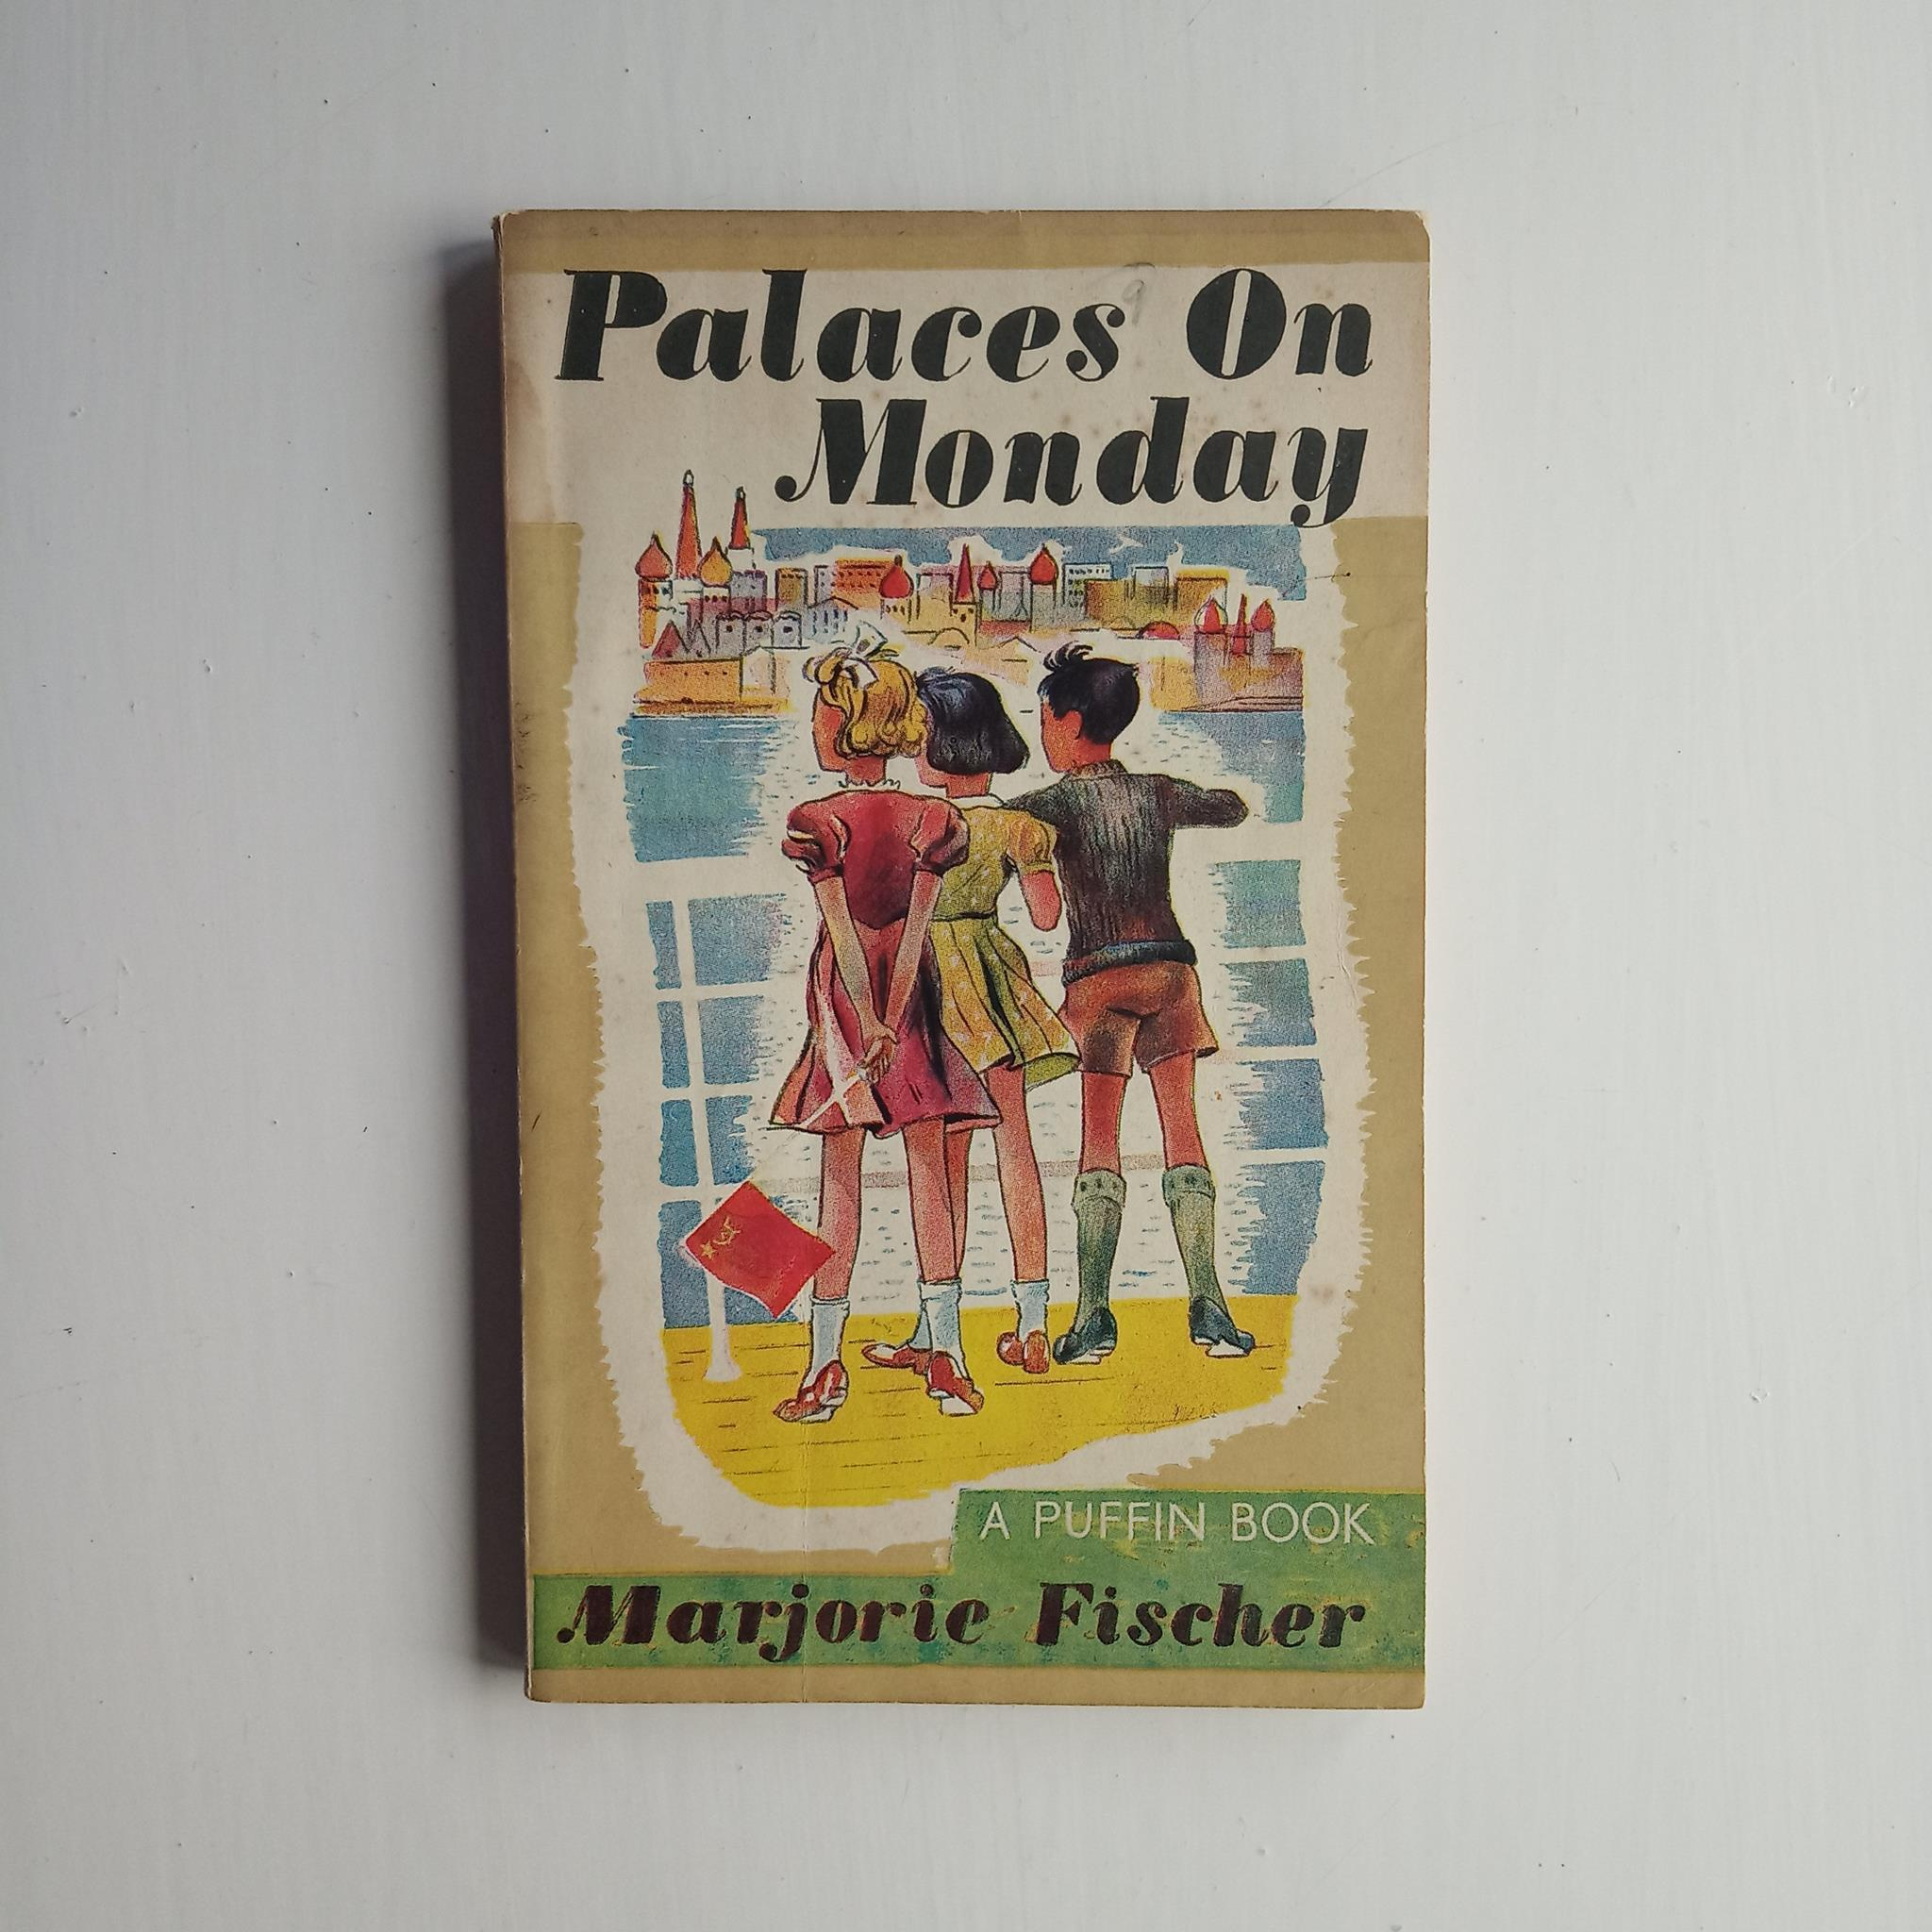 Palaces On Monday by Marjorie Fischer